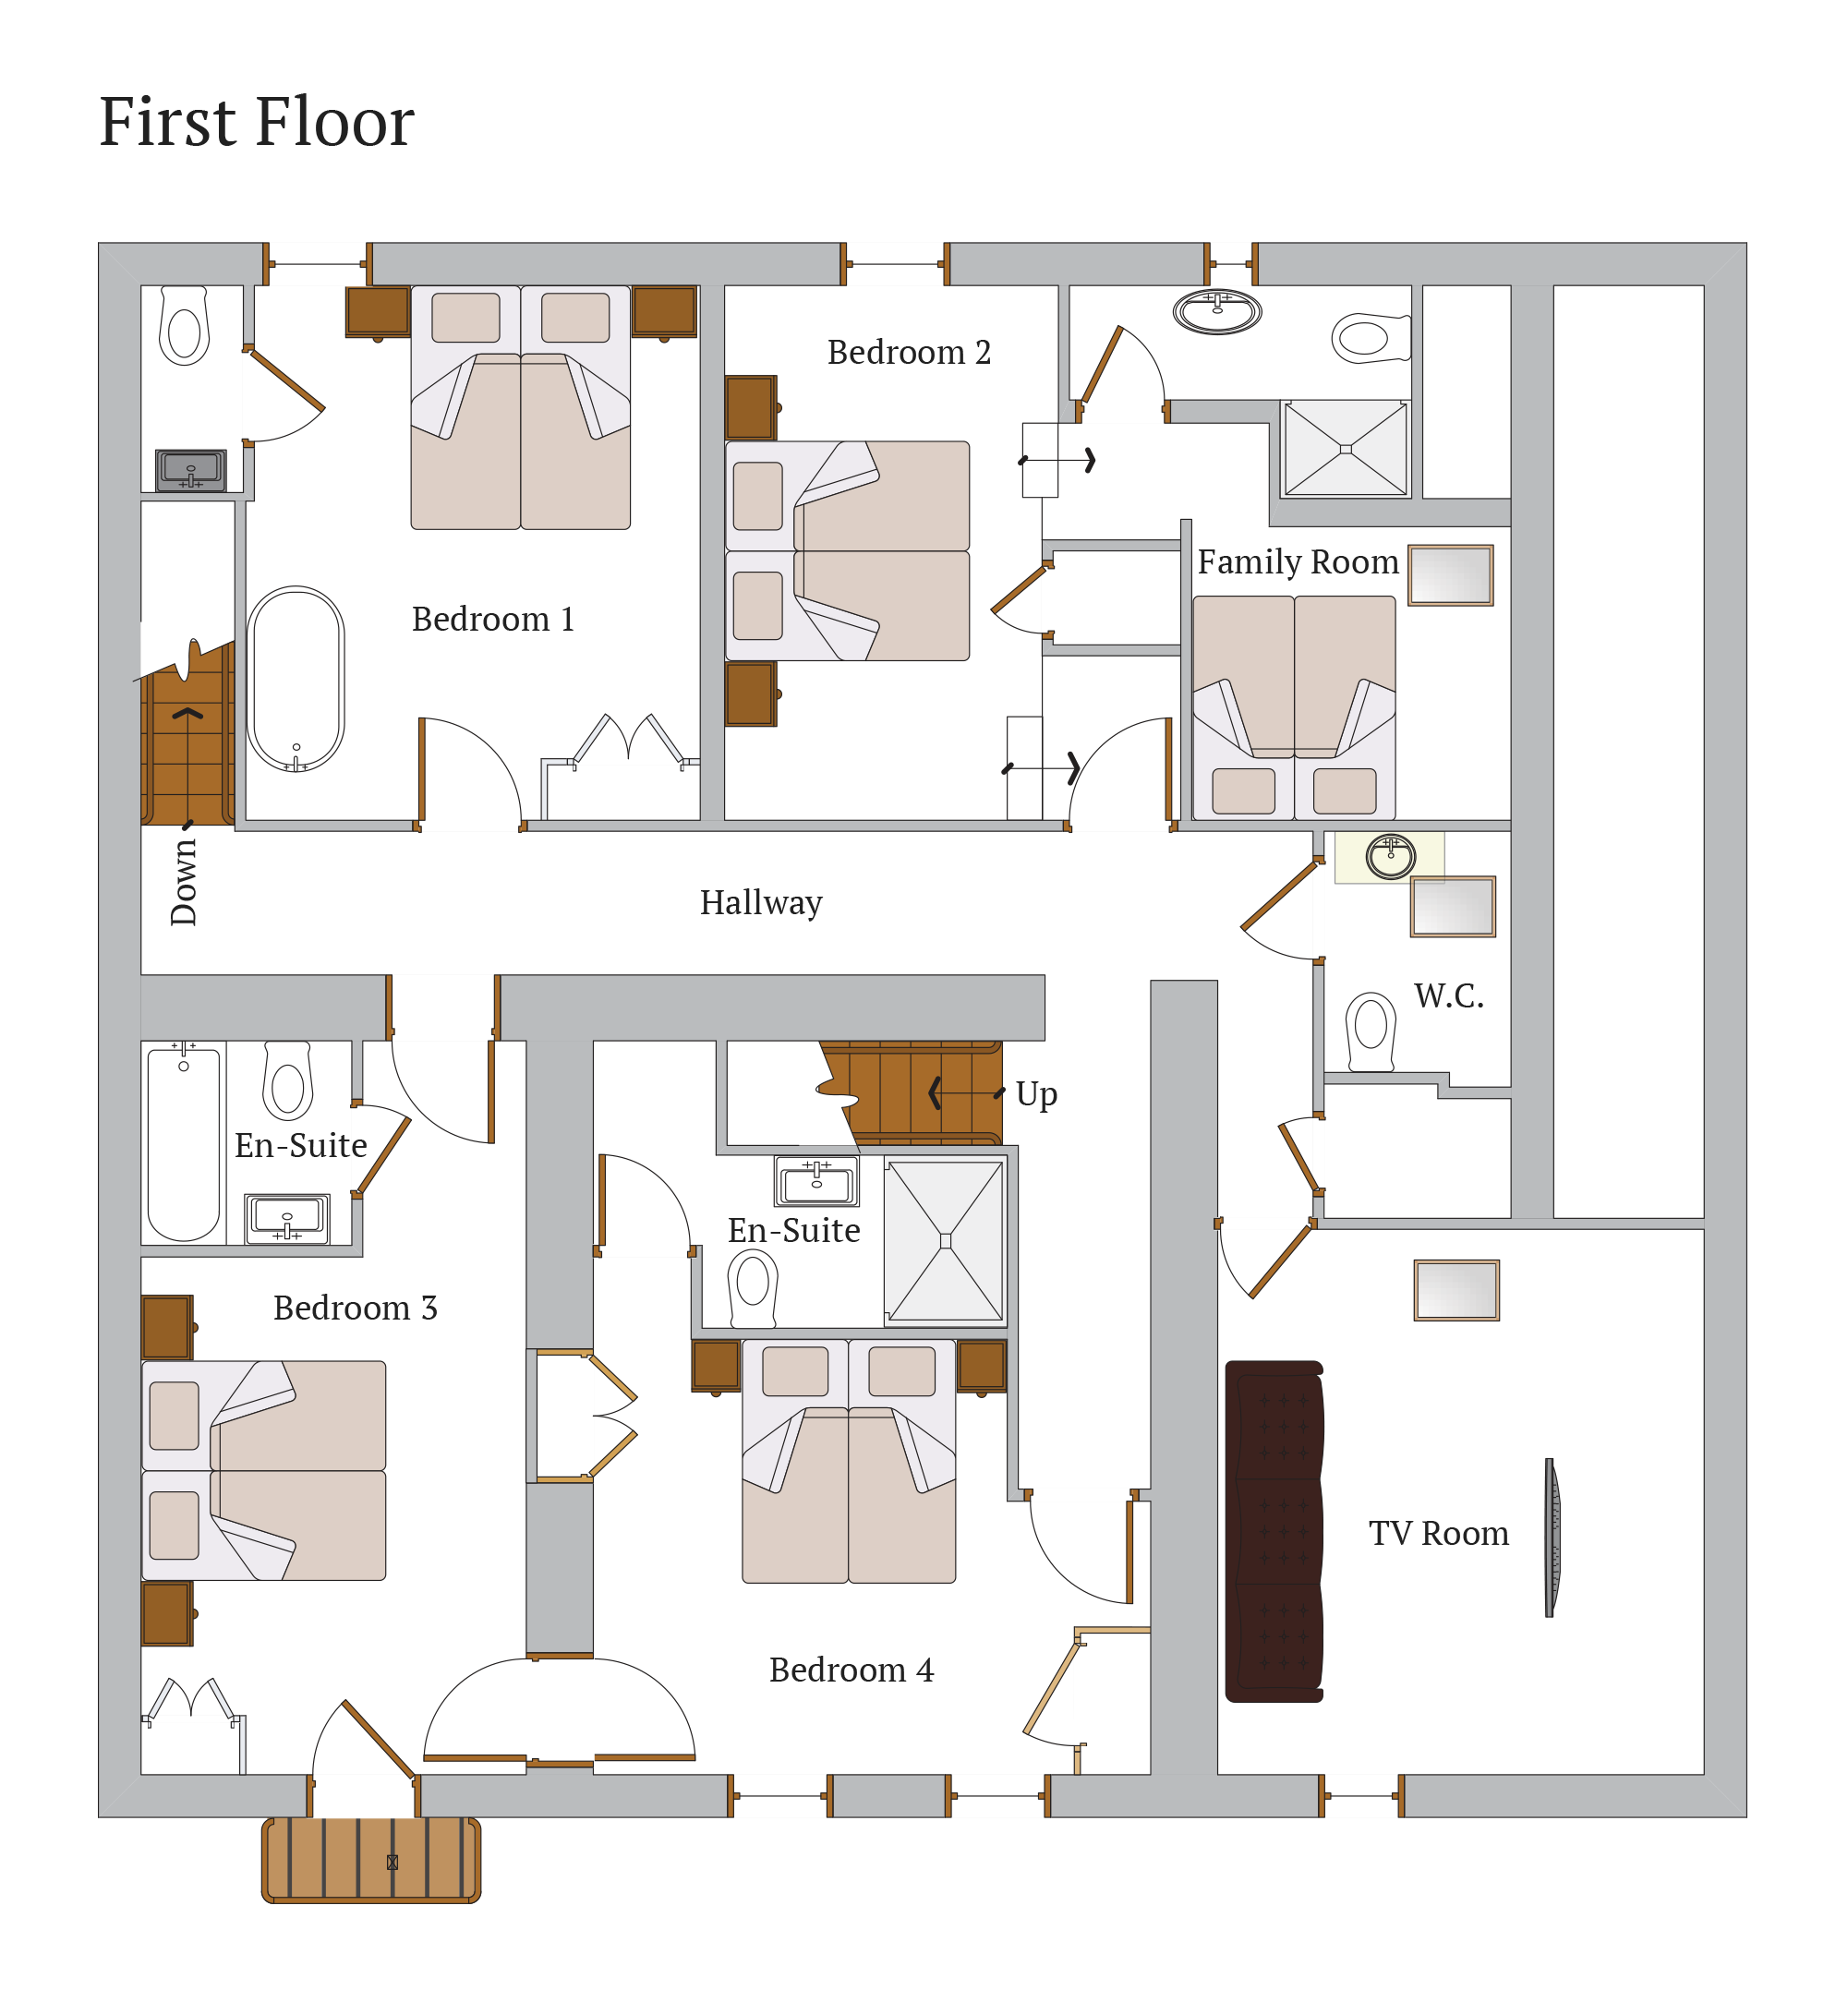 floorplan_1_first_2016.png